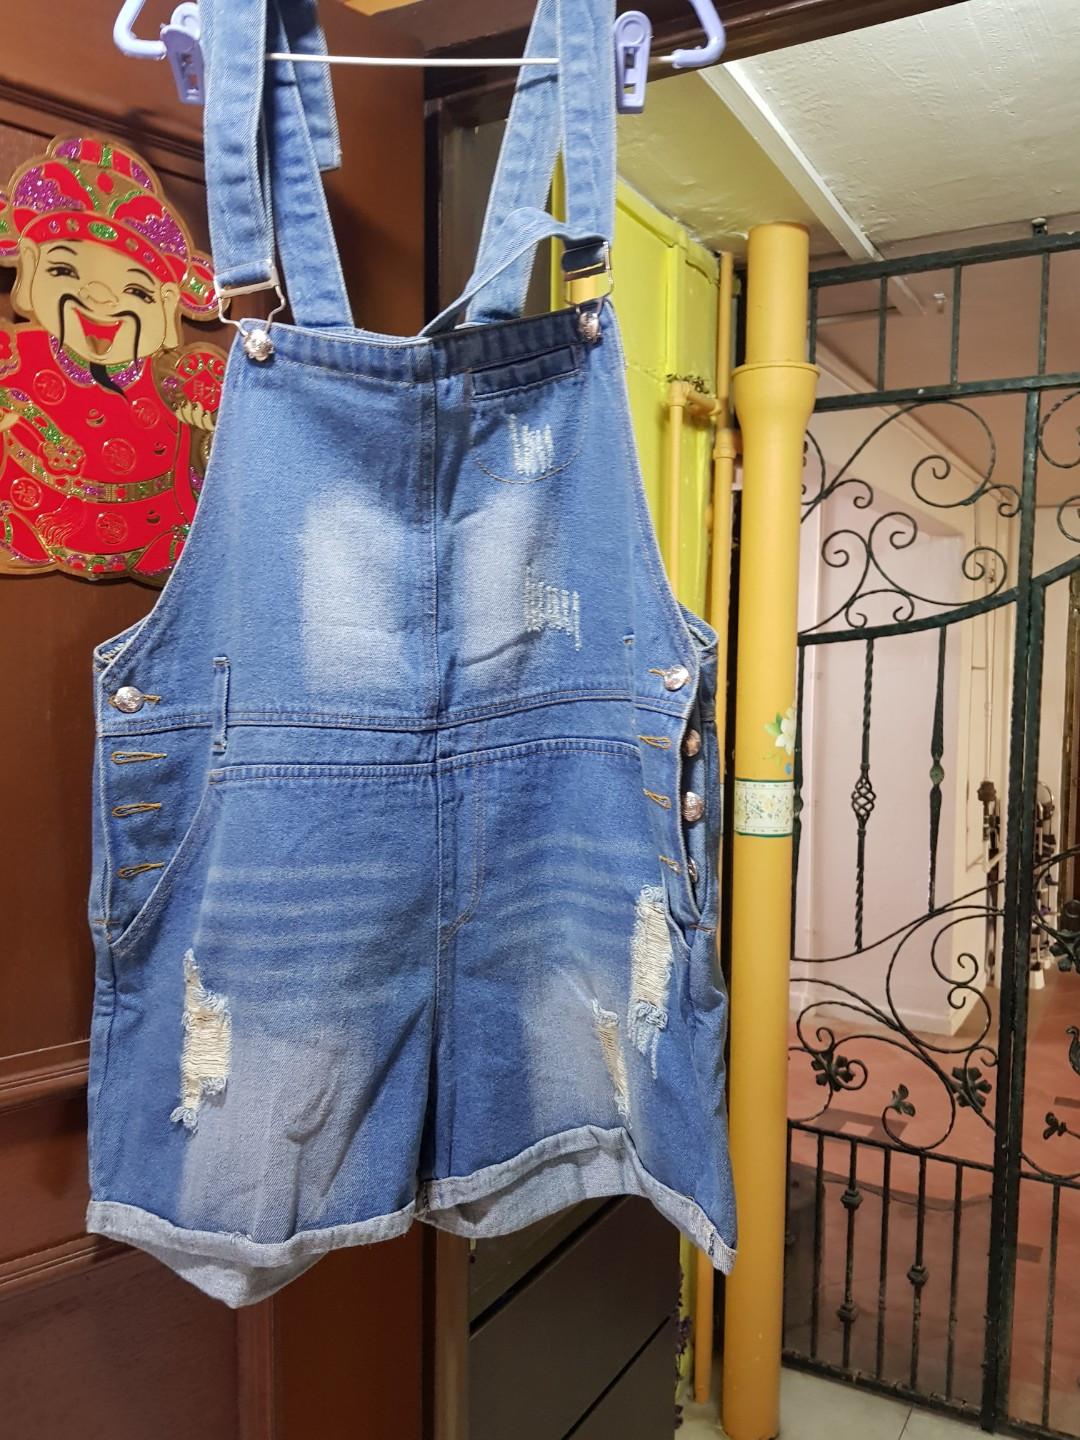 a76ce23eb98f9 BN Size 40 Ripped Denim Pinafore Short, Women's Fashion, Clothes, Pants,  Jeans & Shorts on Carousell